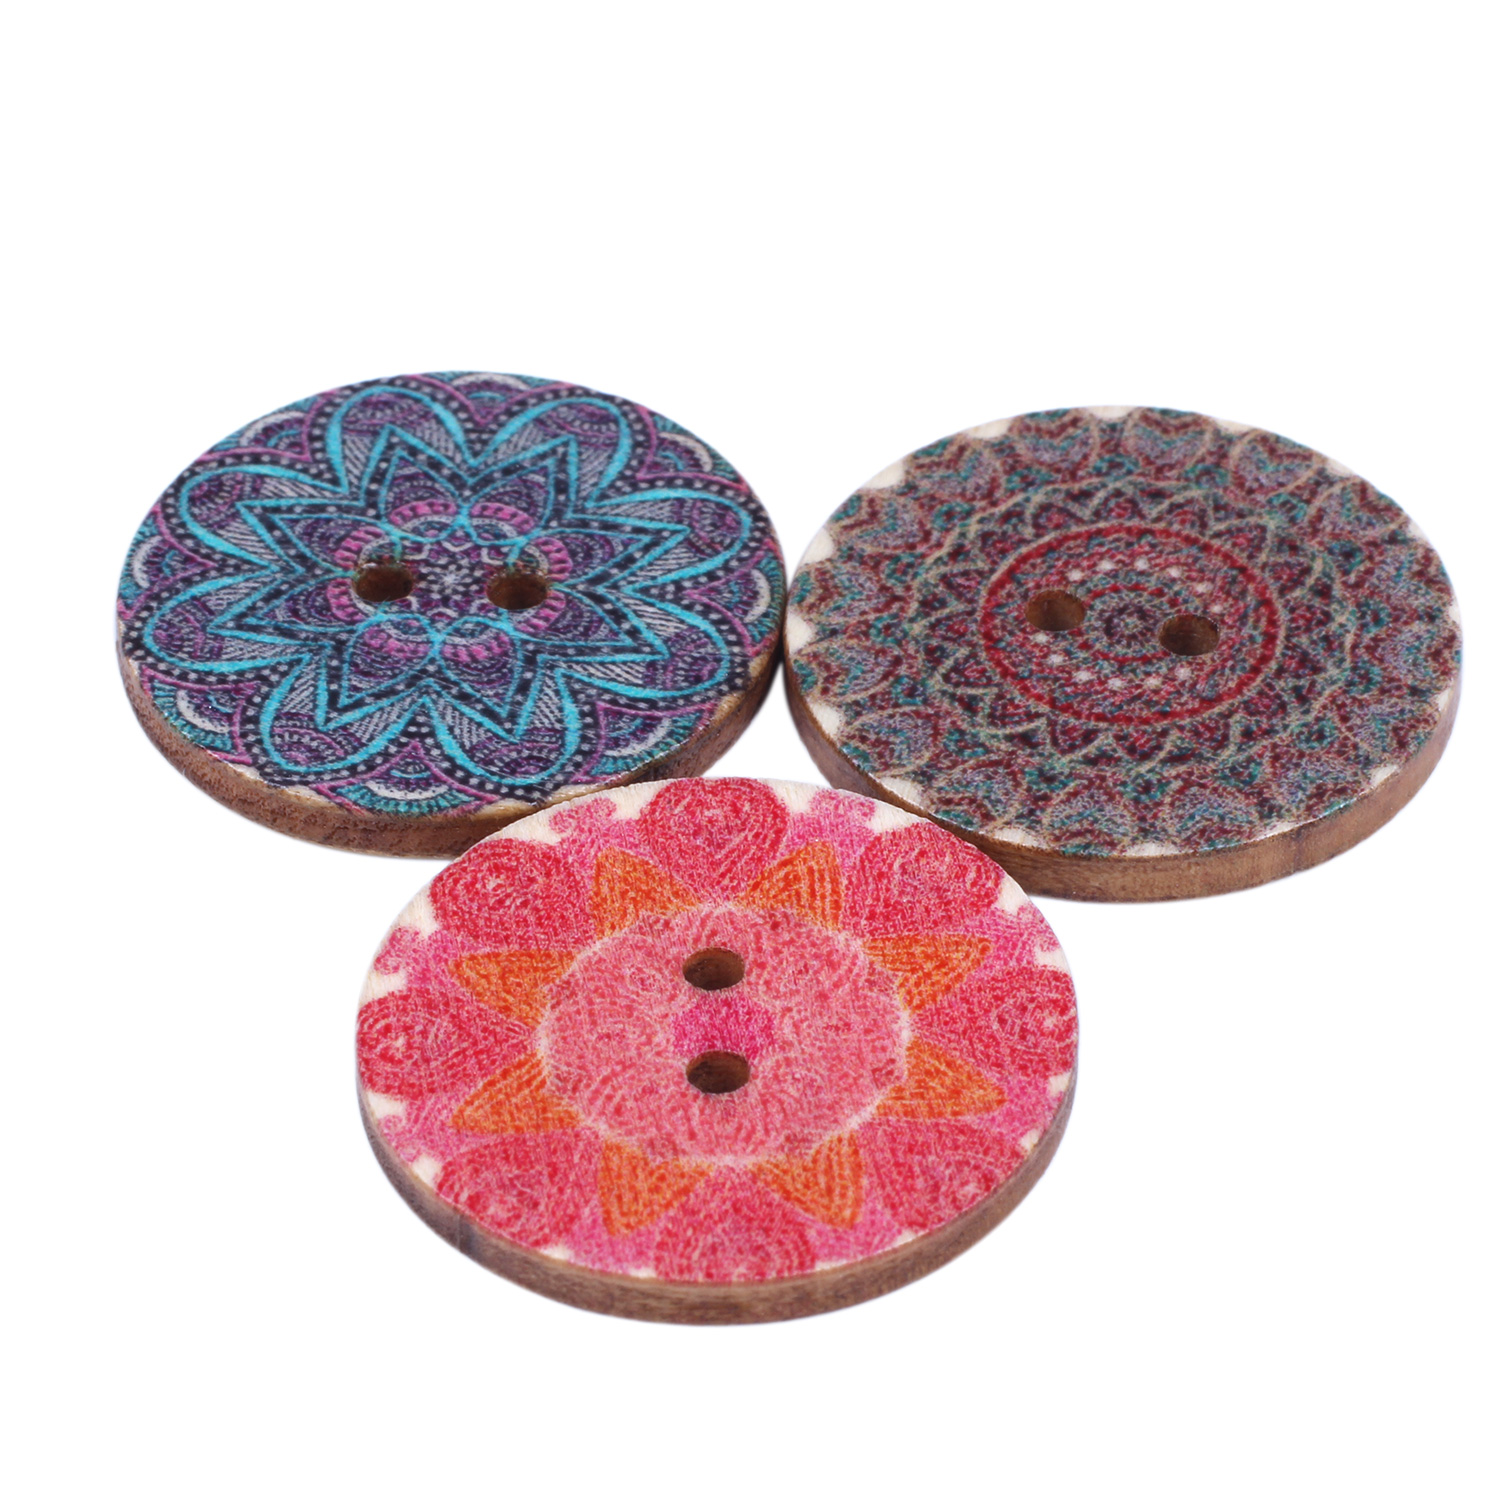 Mixed-Flower-Painting-Round-2-Holes-Wood-Wooden-Buttons-for-Sewing-Crafting-Z4I2 thumbnail 8